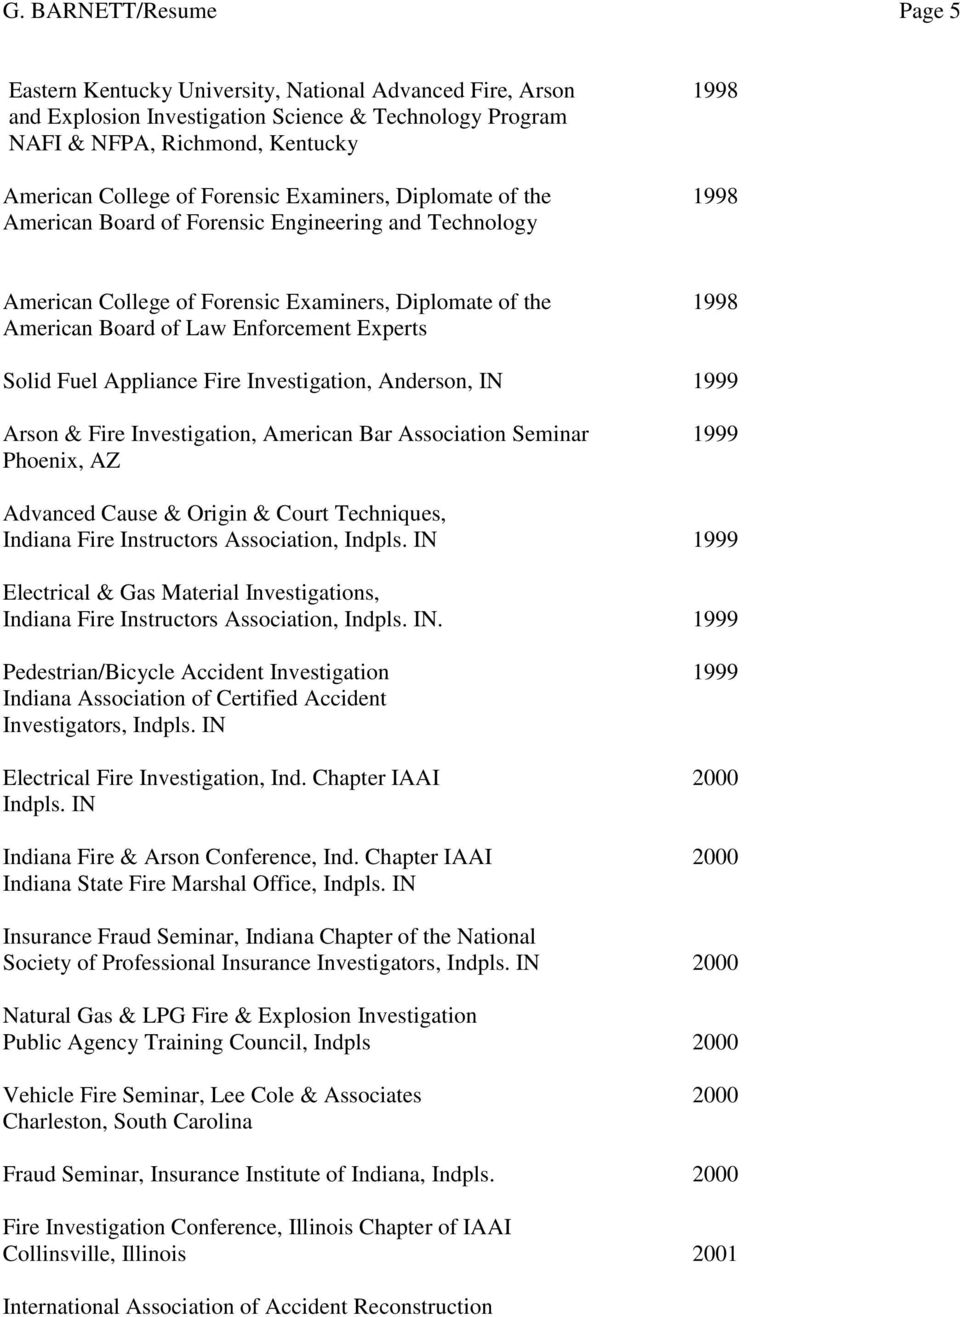 Solid Fuel Appliance Fire Investigation, Anderson, IN 1999 Arson & Fire Investigation, American Bar Association Seminar 1999 Phoenix, AZ Advanced Cause & Origin & Court Techniques, Indiana Fire